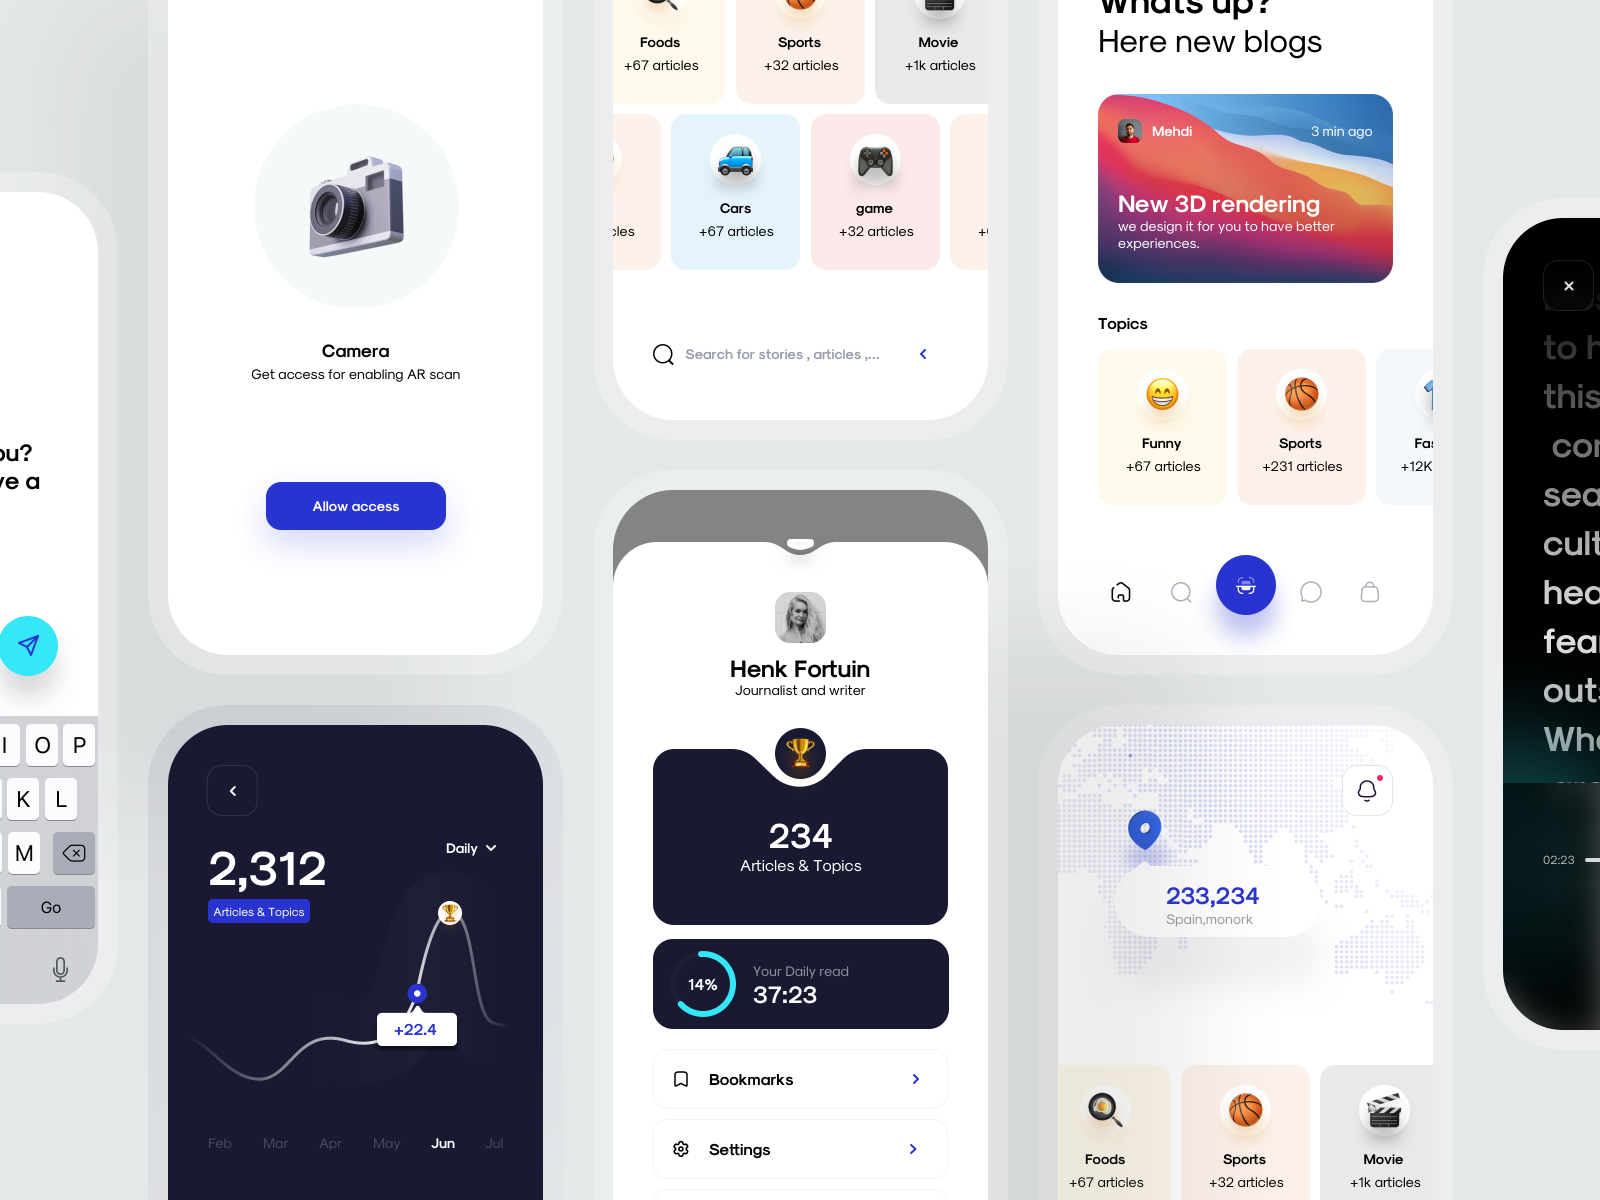 Sample designs for an app concept